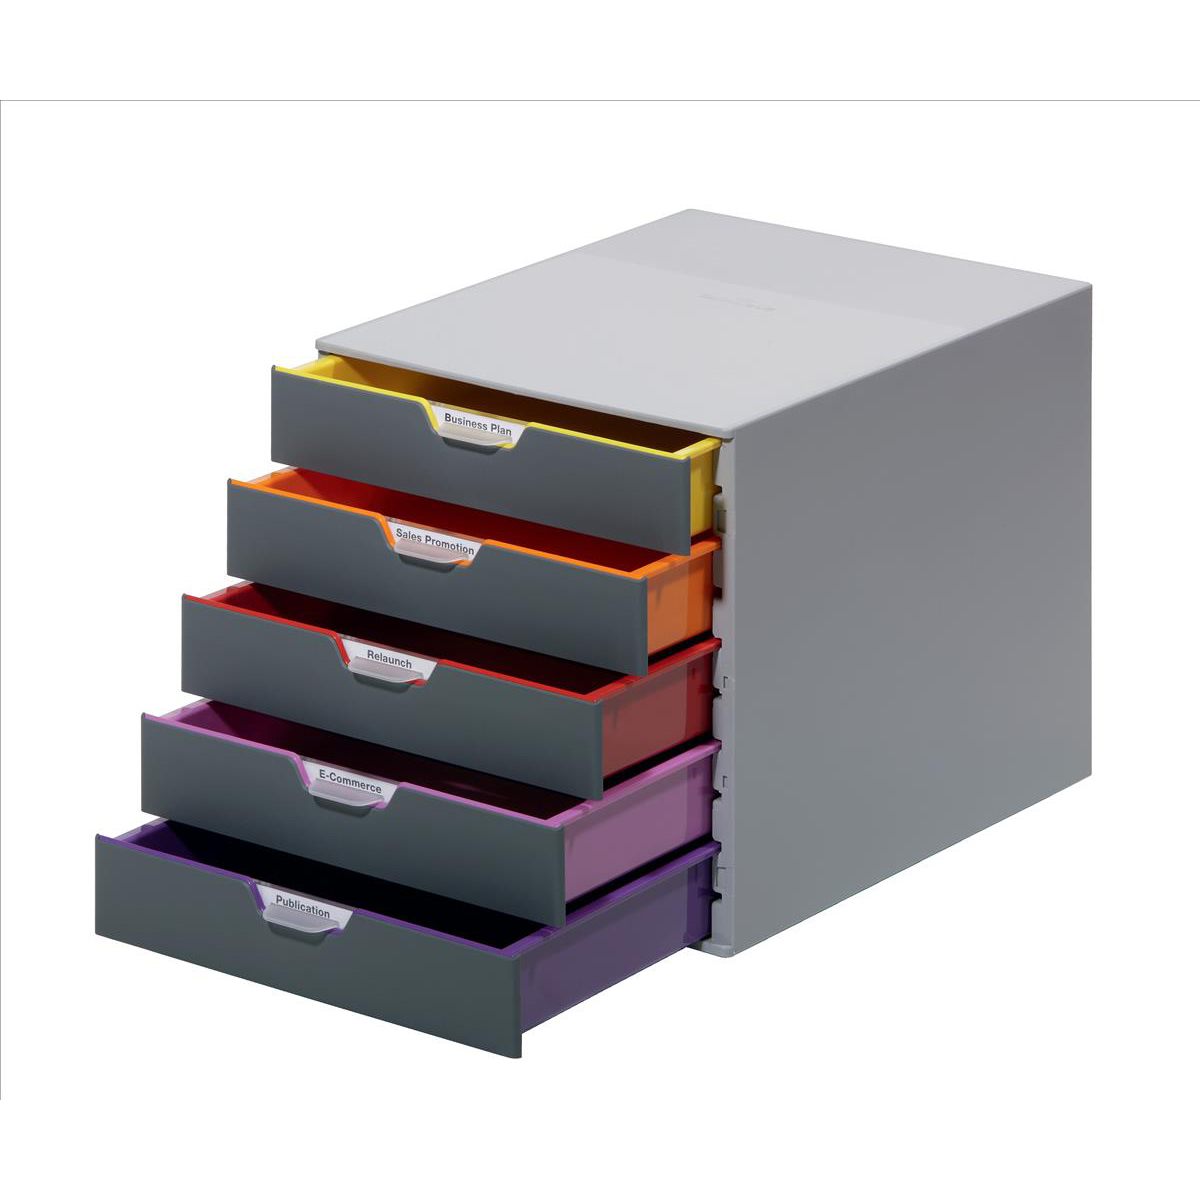 Industrial cabinets or drawers or shelving Durable Varicolor Plastic Desktop Drawer Set Stackable 5 Drawers A4 Ref 760527